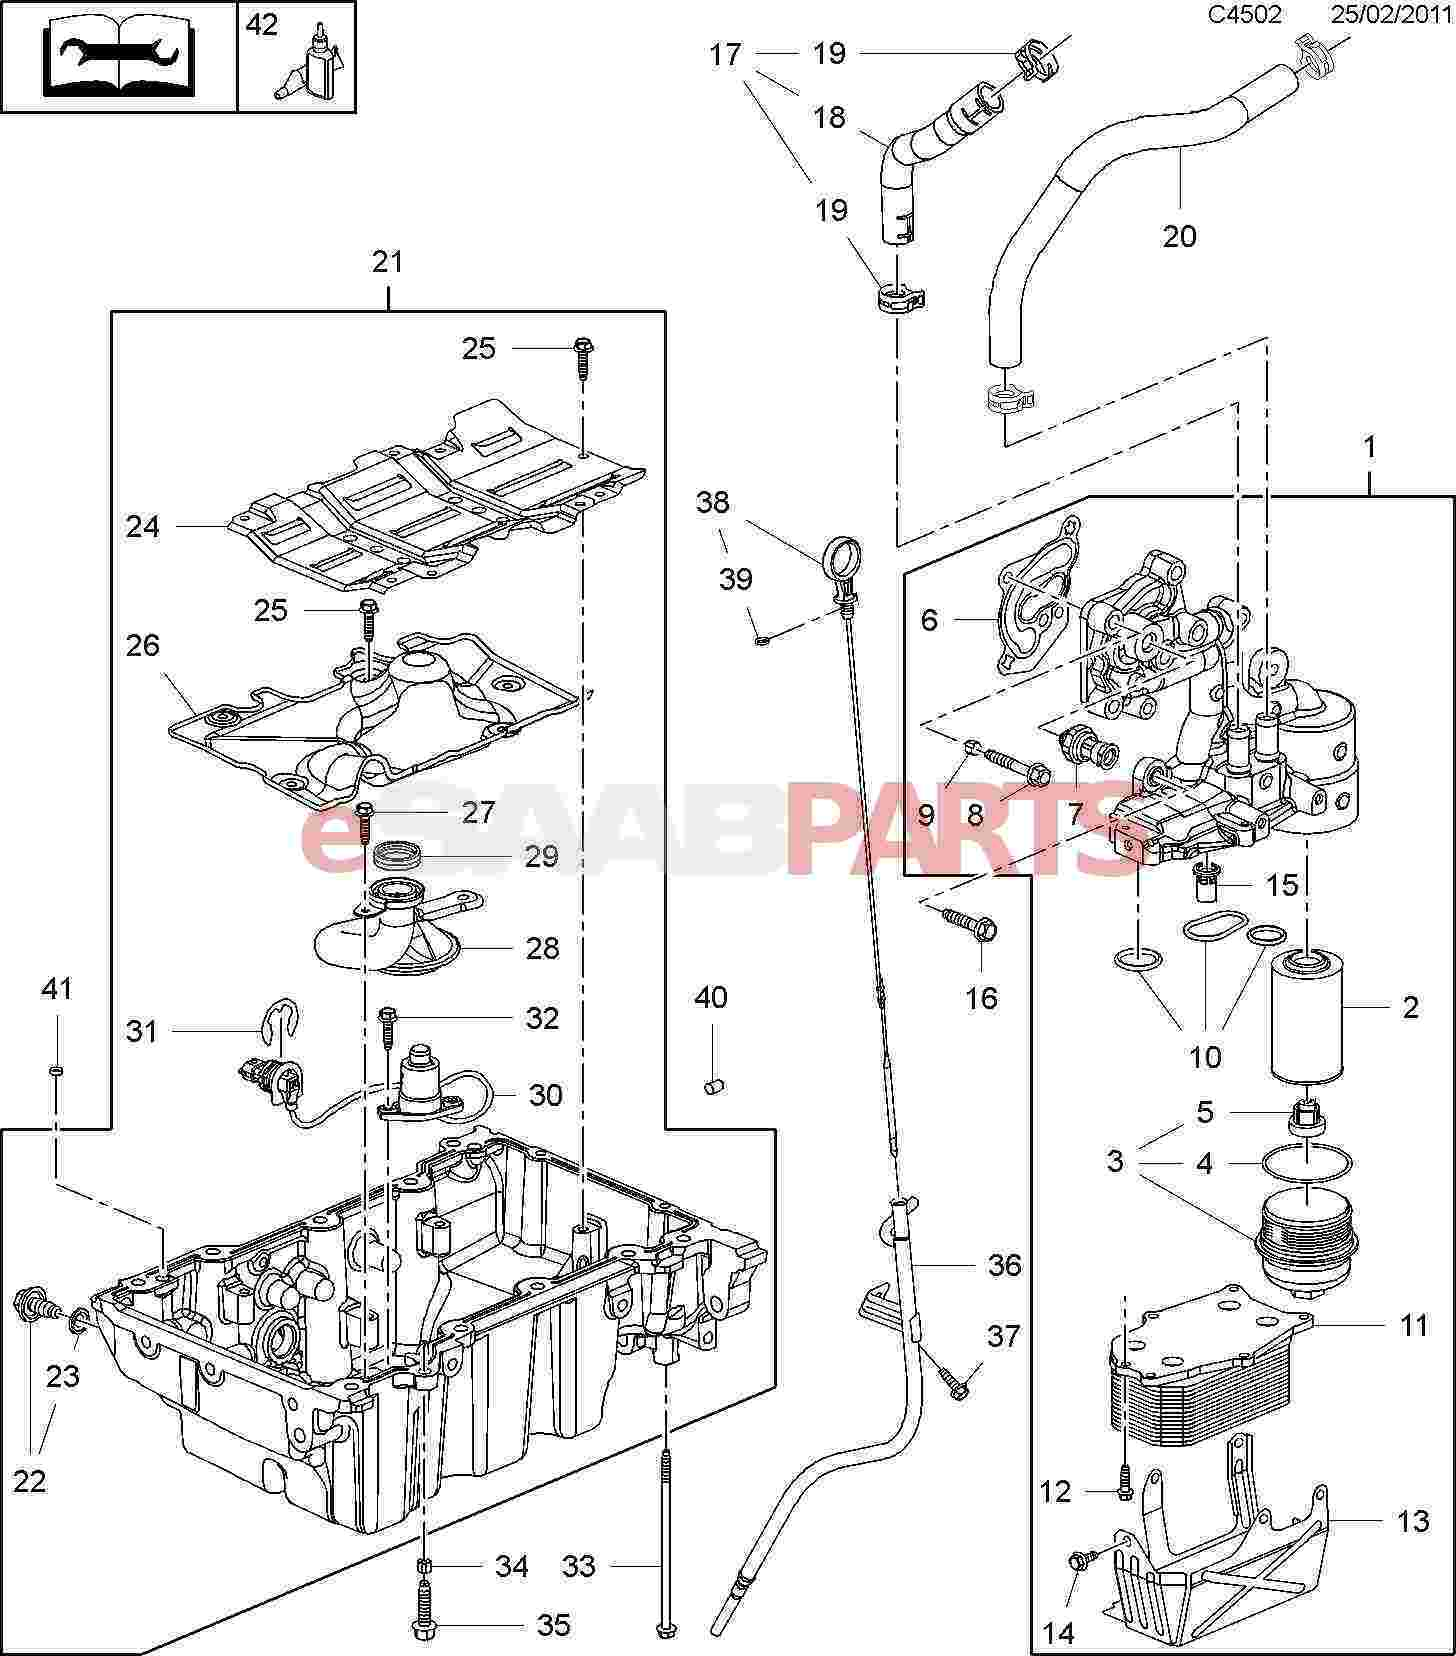 93186310 saab oil filter insert 2 8t genuine saab parts from rh esaabparts com Saab 9 3 1999 Serpentine Belt Saab Parts Diagram